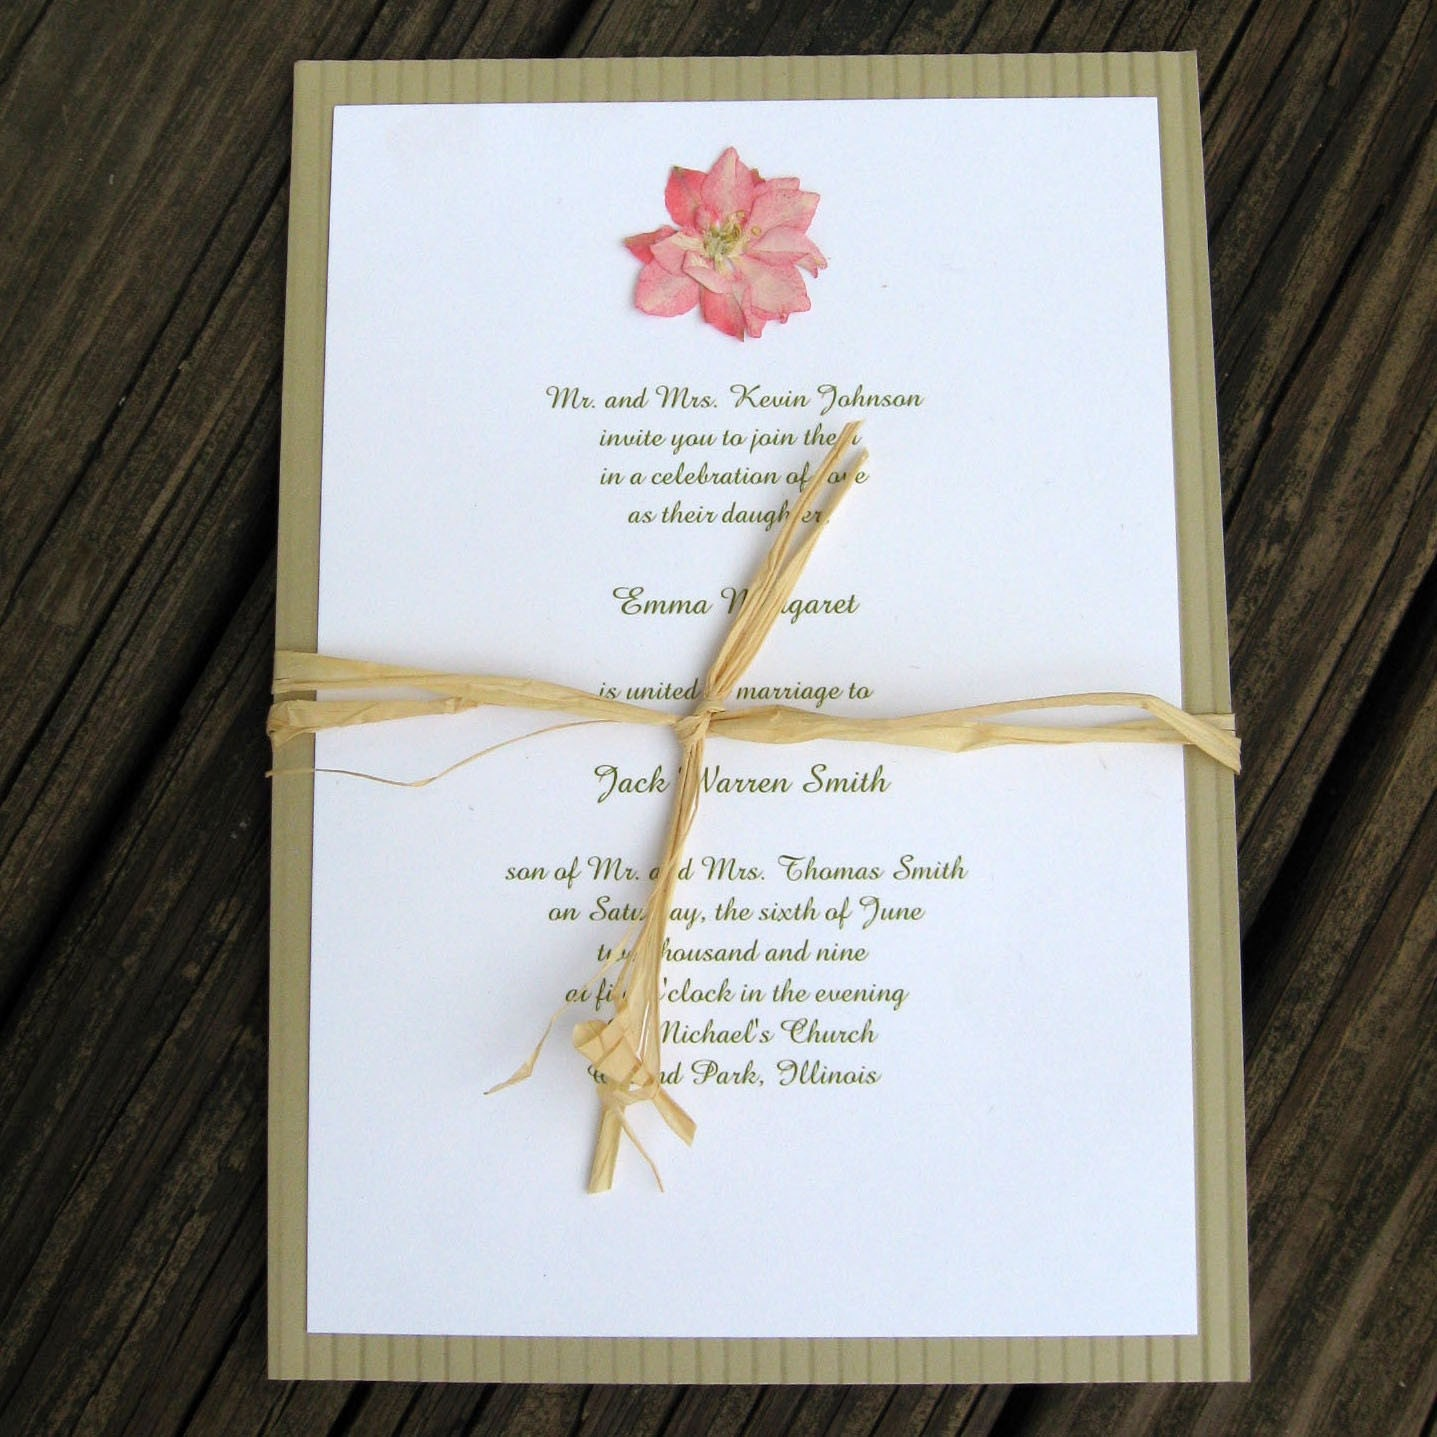 Pressed Wedding Flowers: Ides For Pressed Flowers Incorperated Into Invites